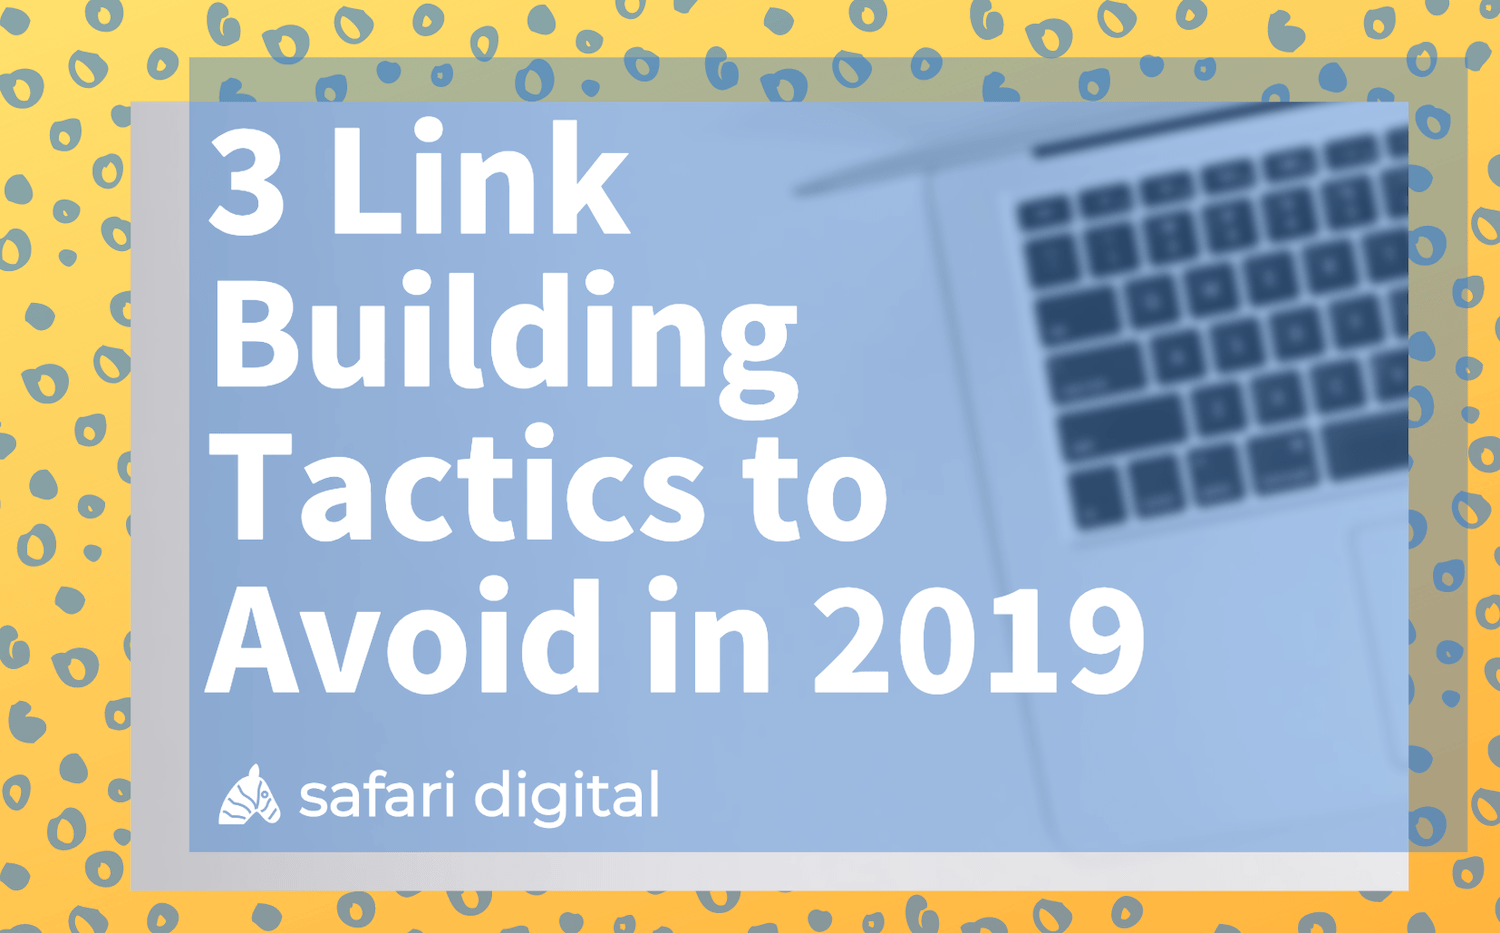 3 link building tactics to avoid in 2019 banner image large